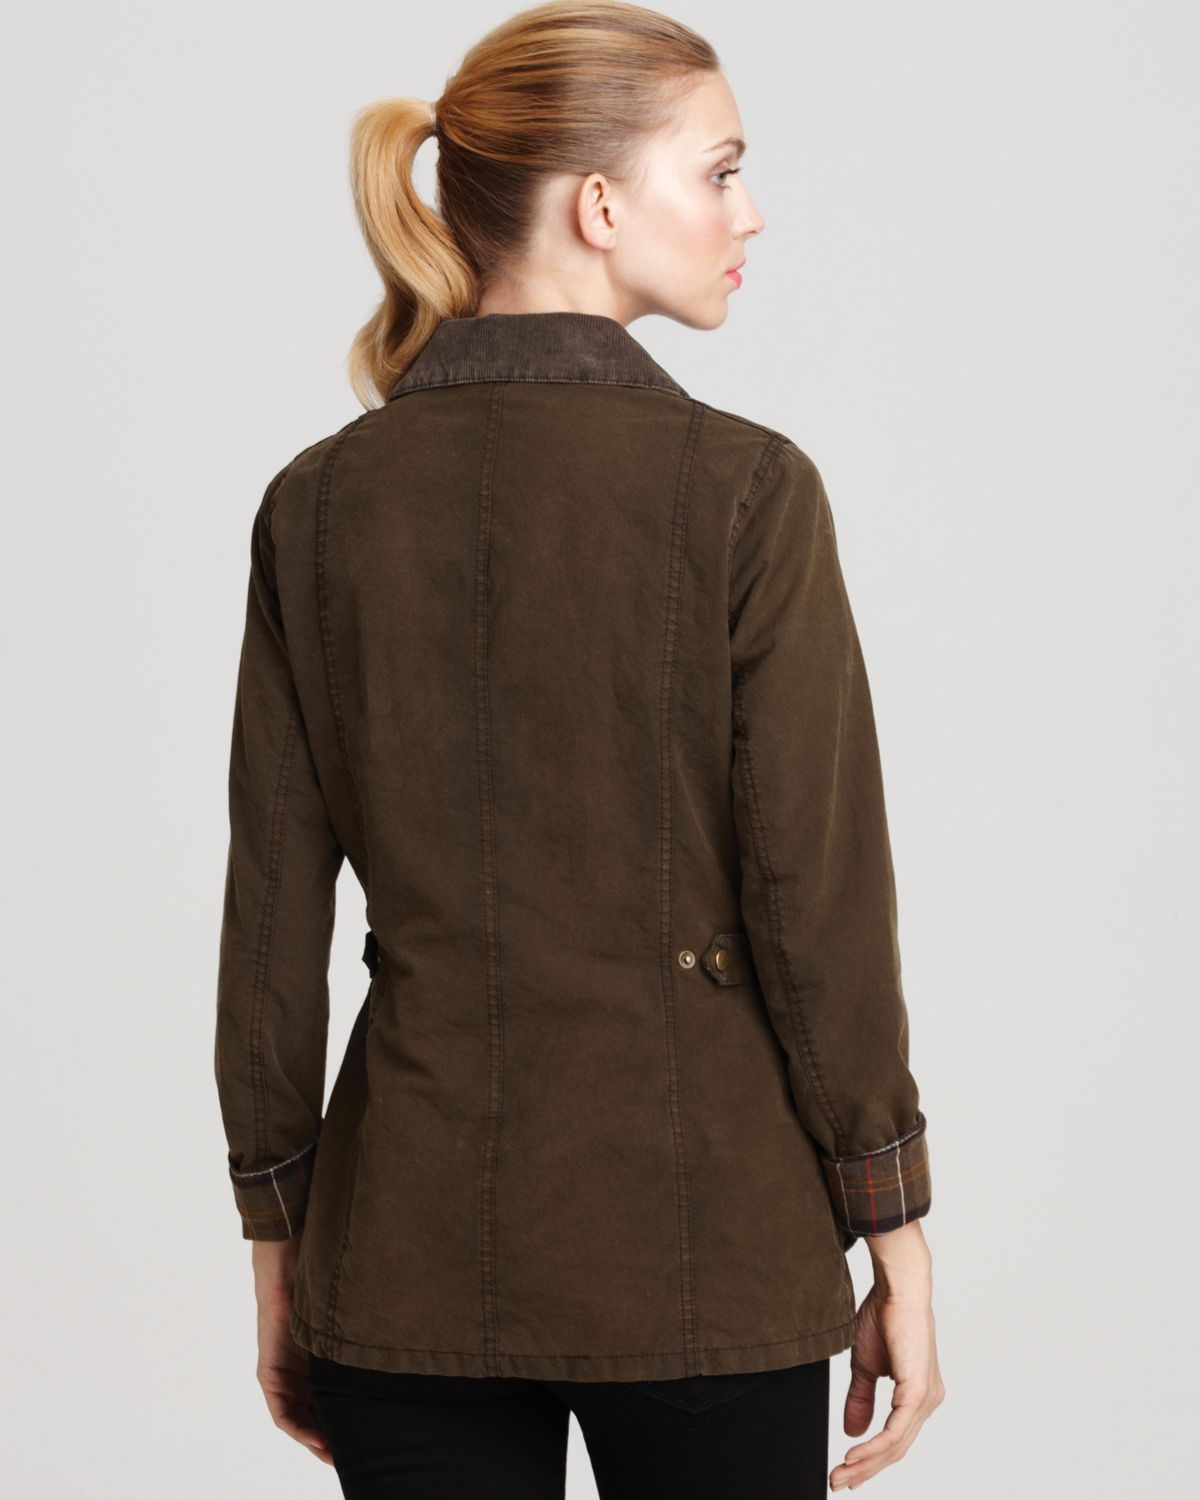 Barbour Vintage Beadnell Jacket In Olive Brown Lyst